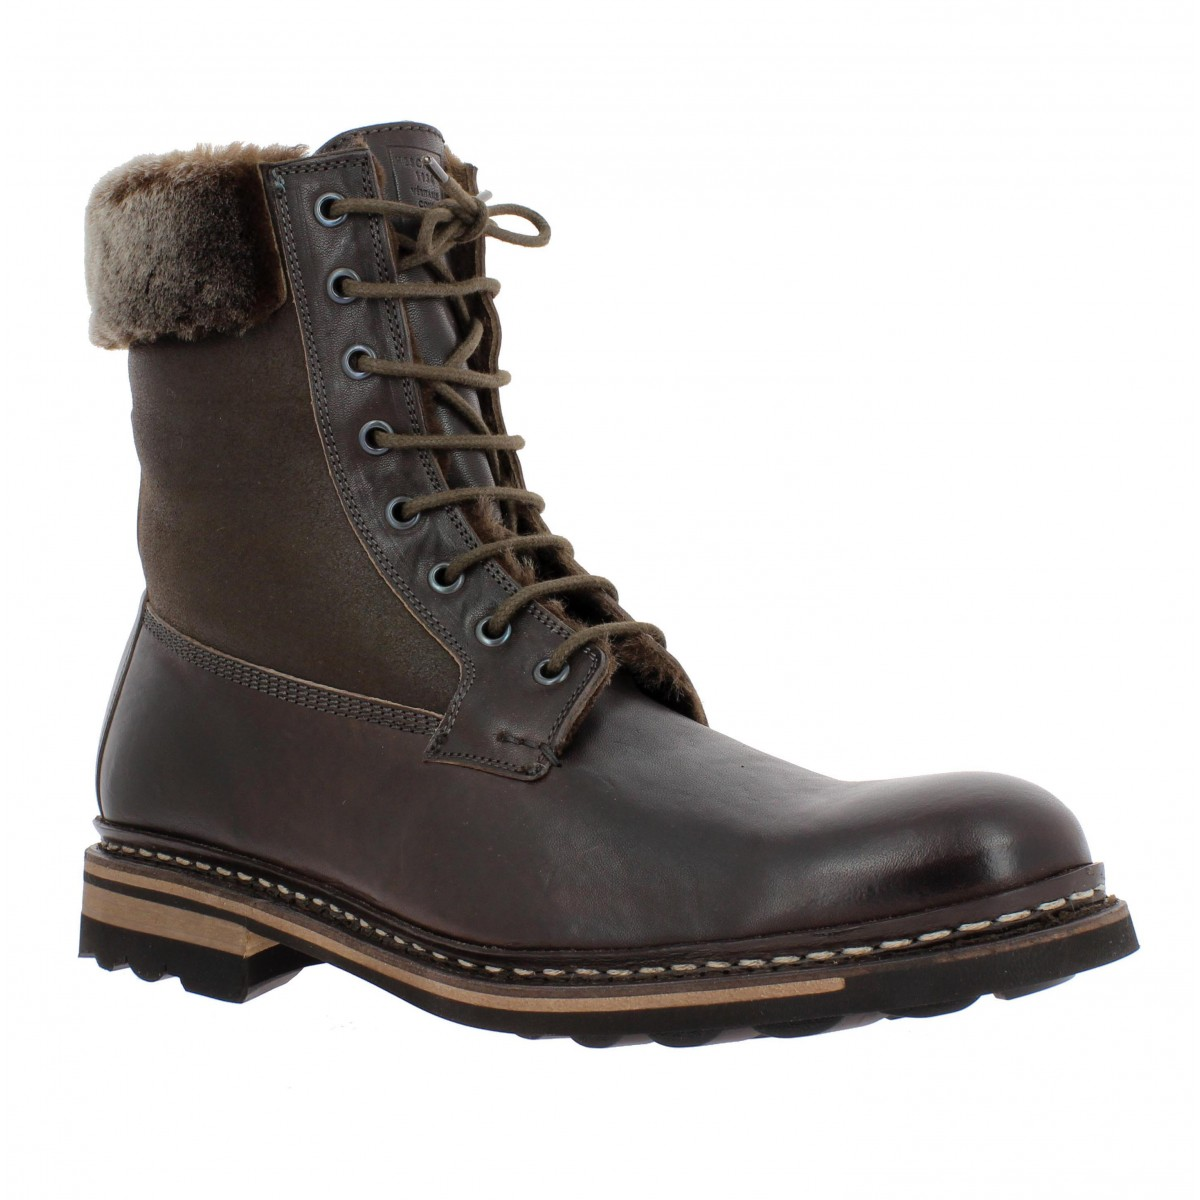 Bottines HESCHUNG Zermatt veau + fourrure Homme Marron